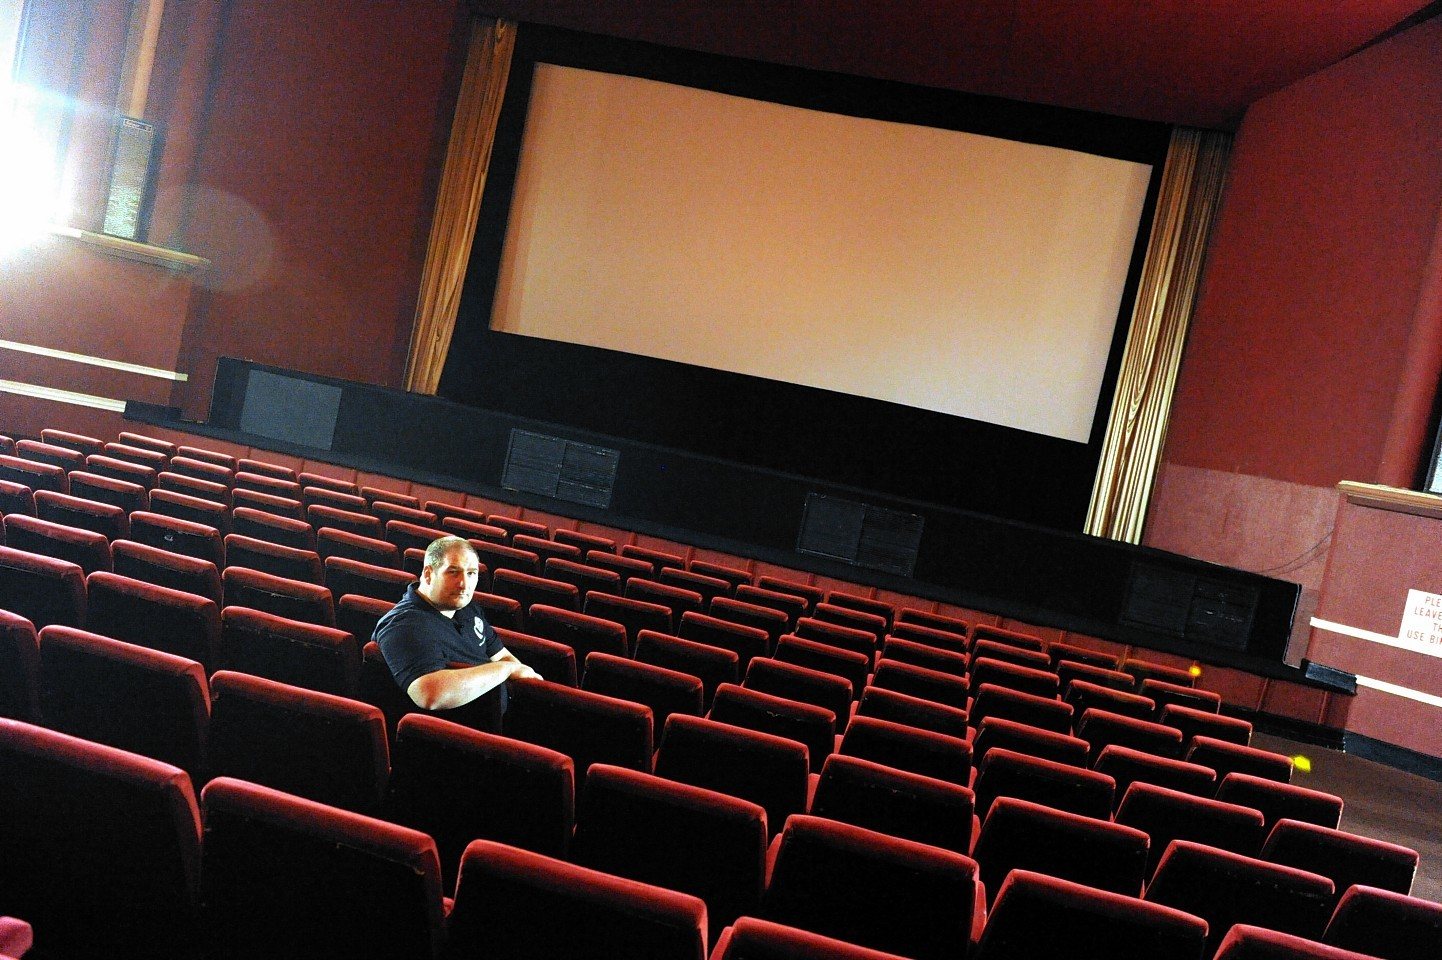 Martin Thomson, manager of the Moray Playhouse Cinema, Elgin, in the auditorium of the cinema.